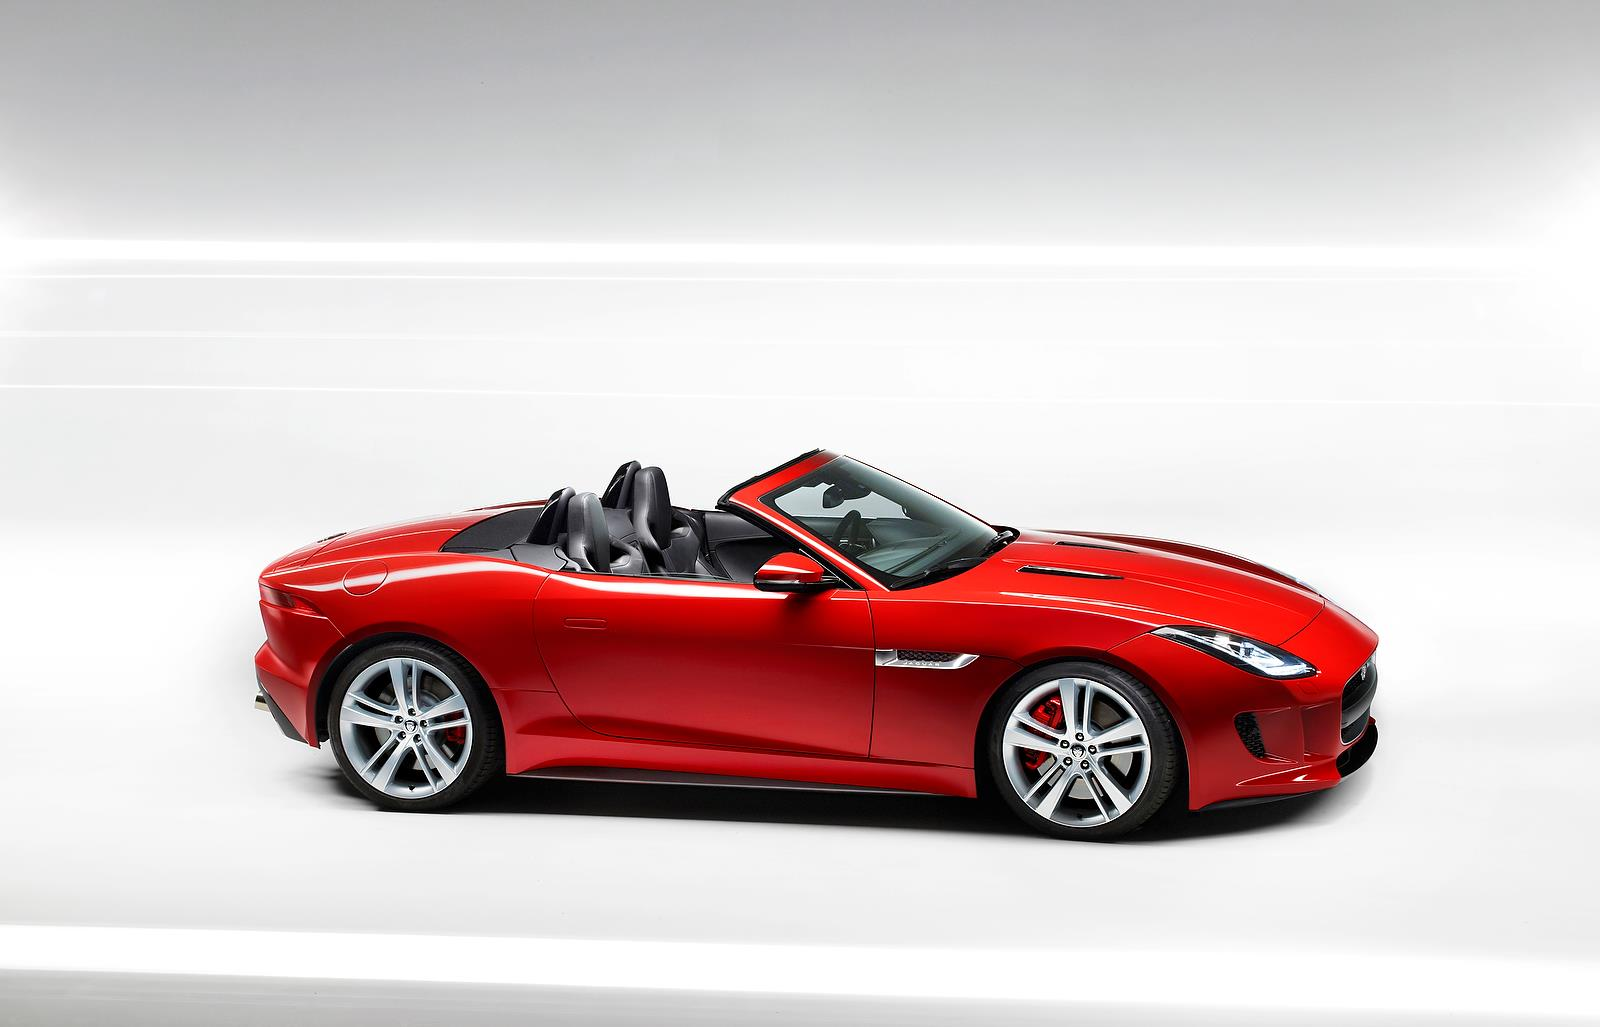 New Jaguar F-type revealed